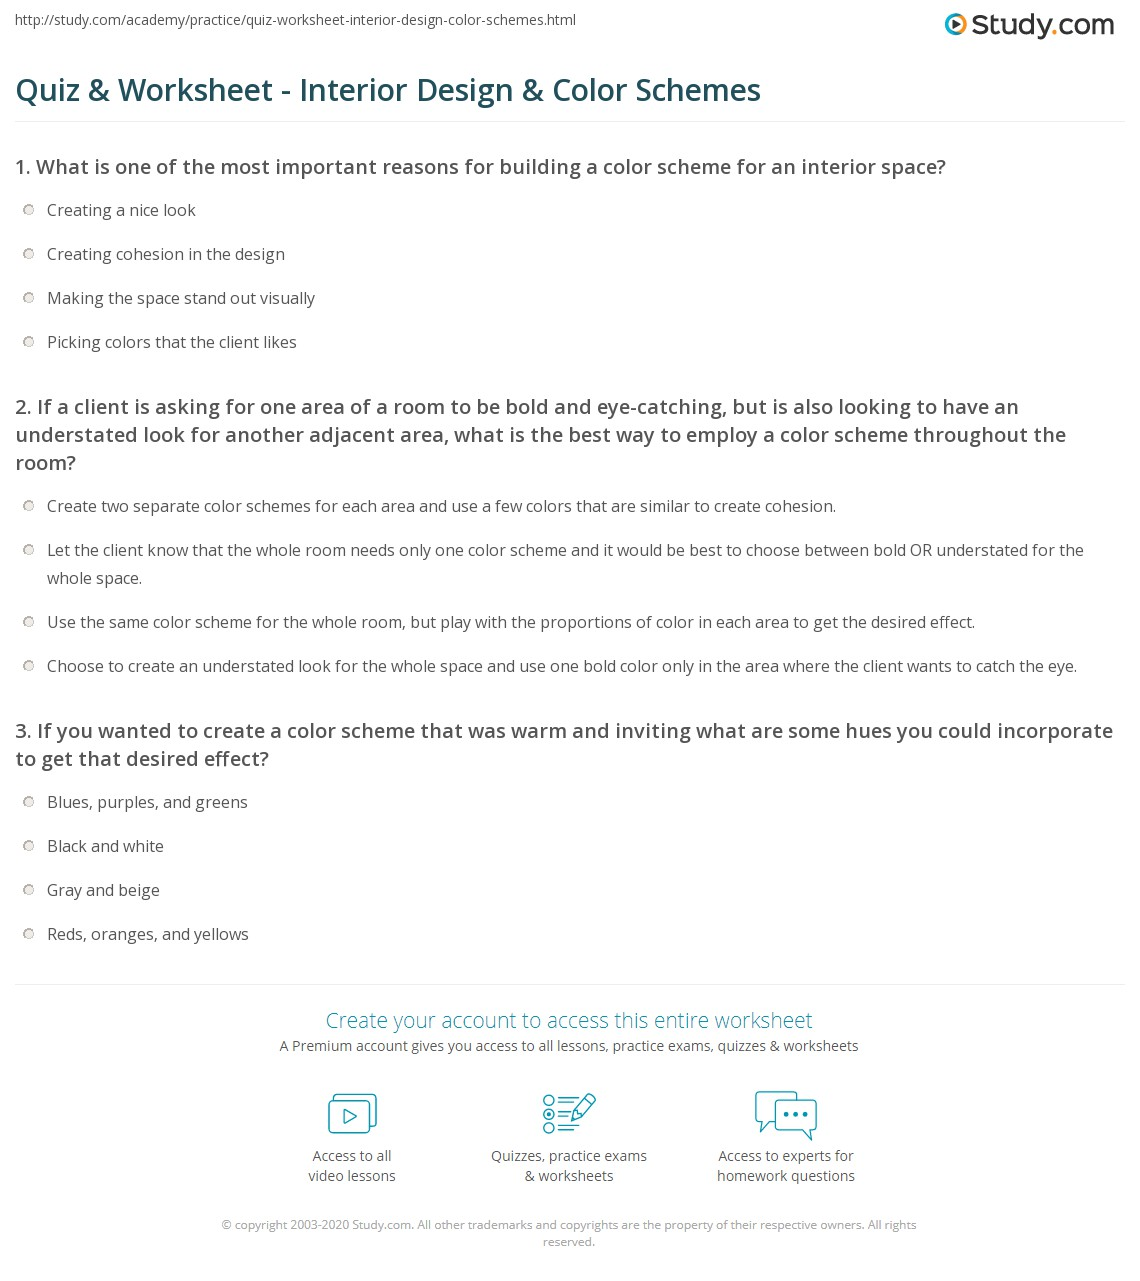 Quiz Worksheet Interior Design Color Schemes